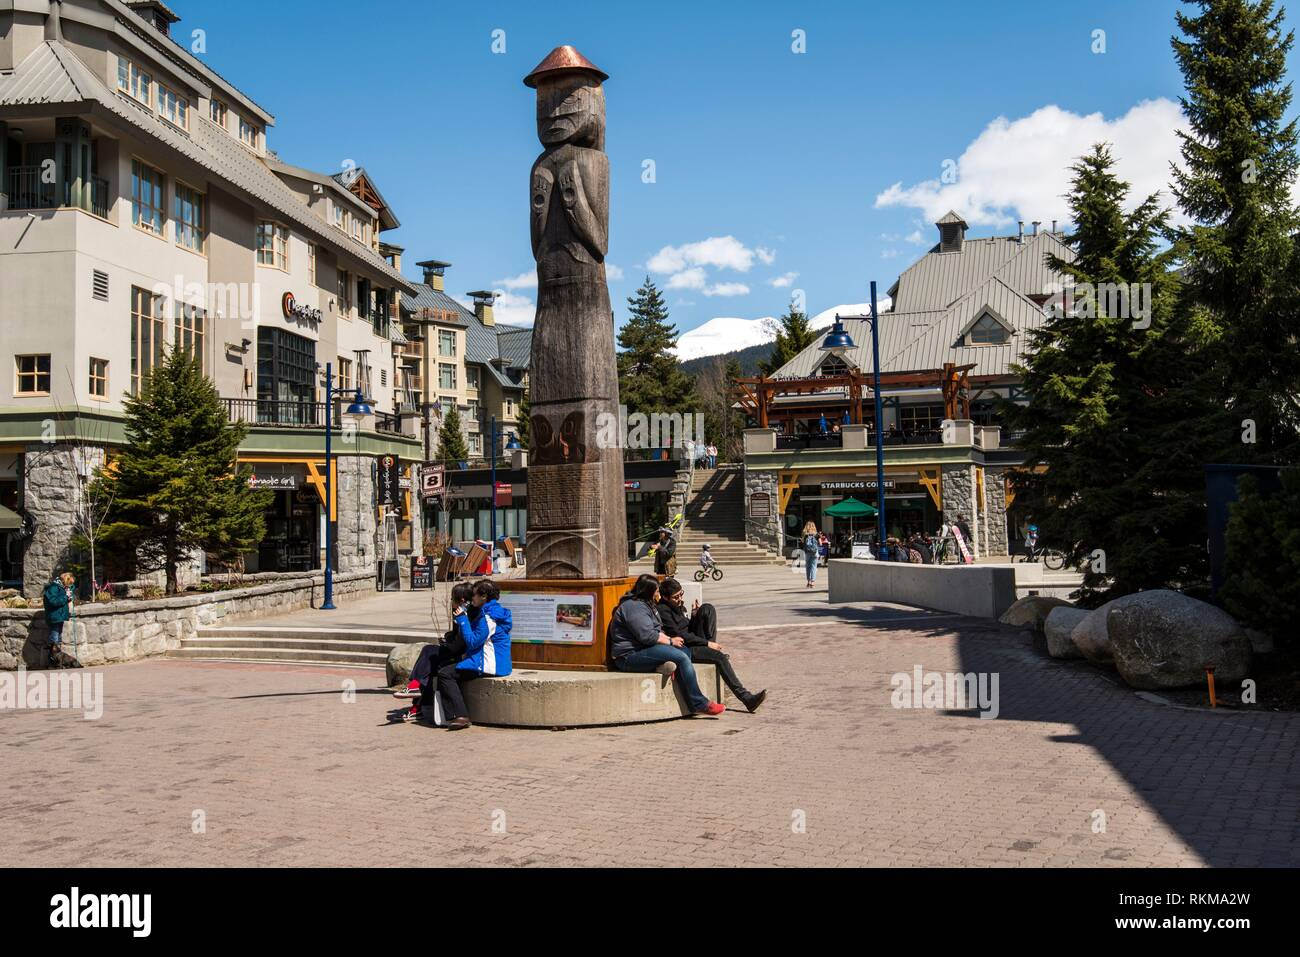 People rest by a First Nations totem pole in Whistler village, British Columbia, Canada. - Stock Image